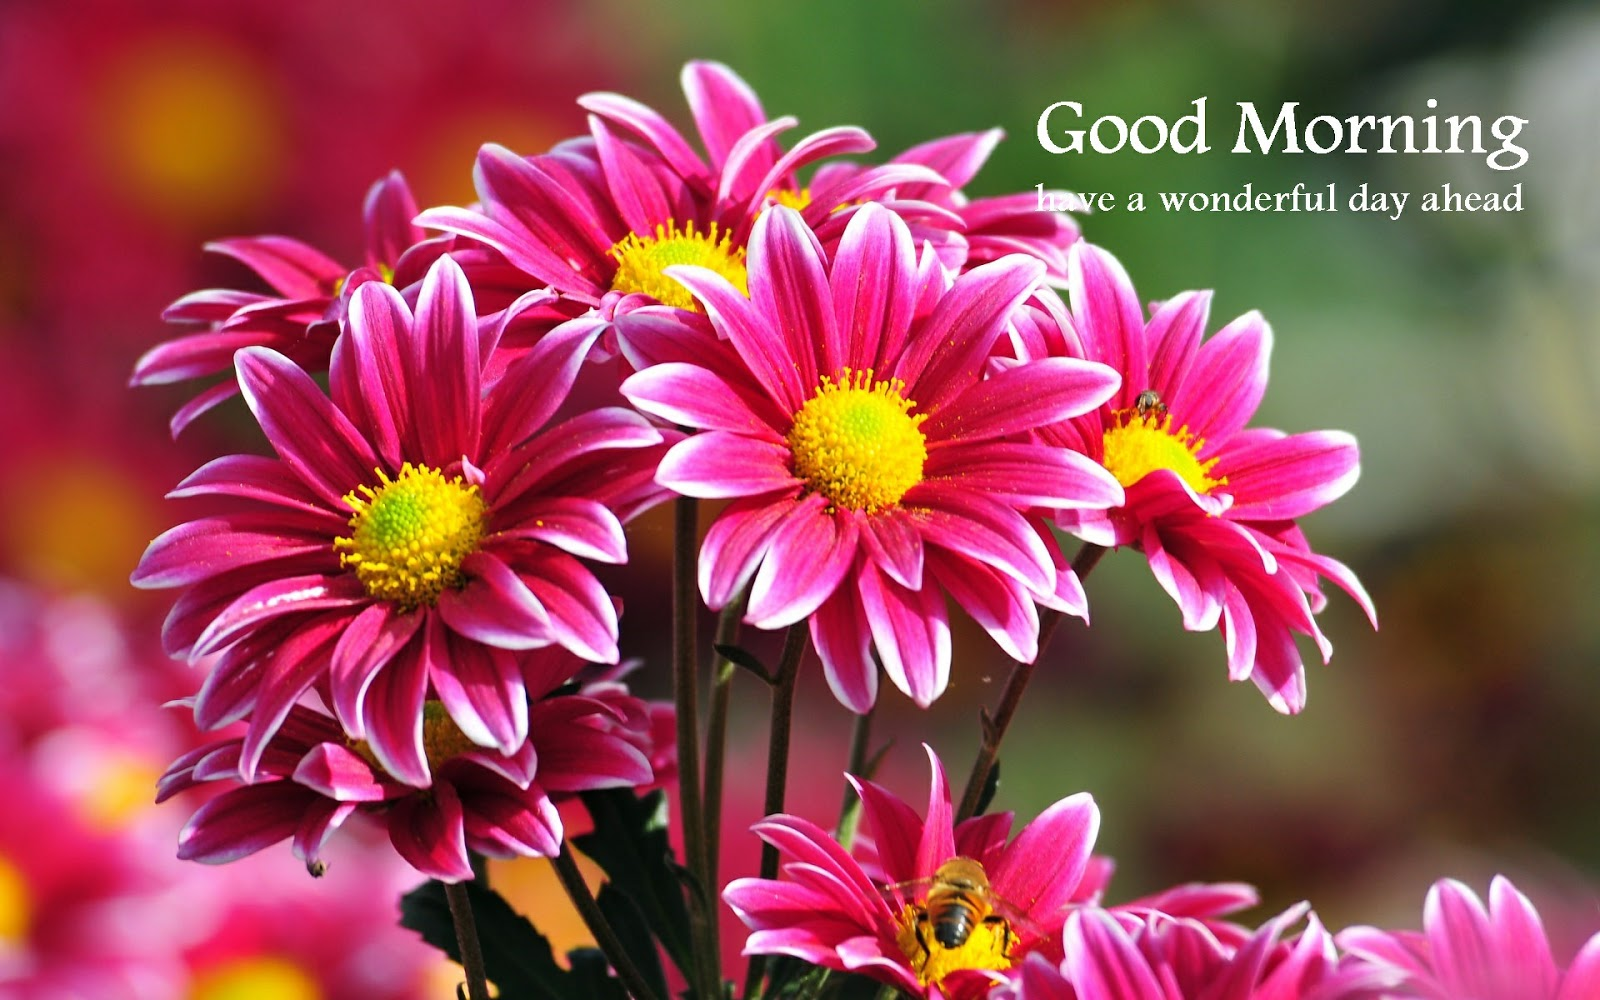 Images For Whatsapp Good Morning Wise With Beautiful Flower